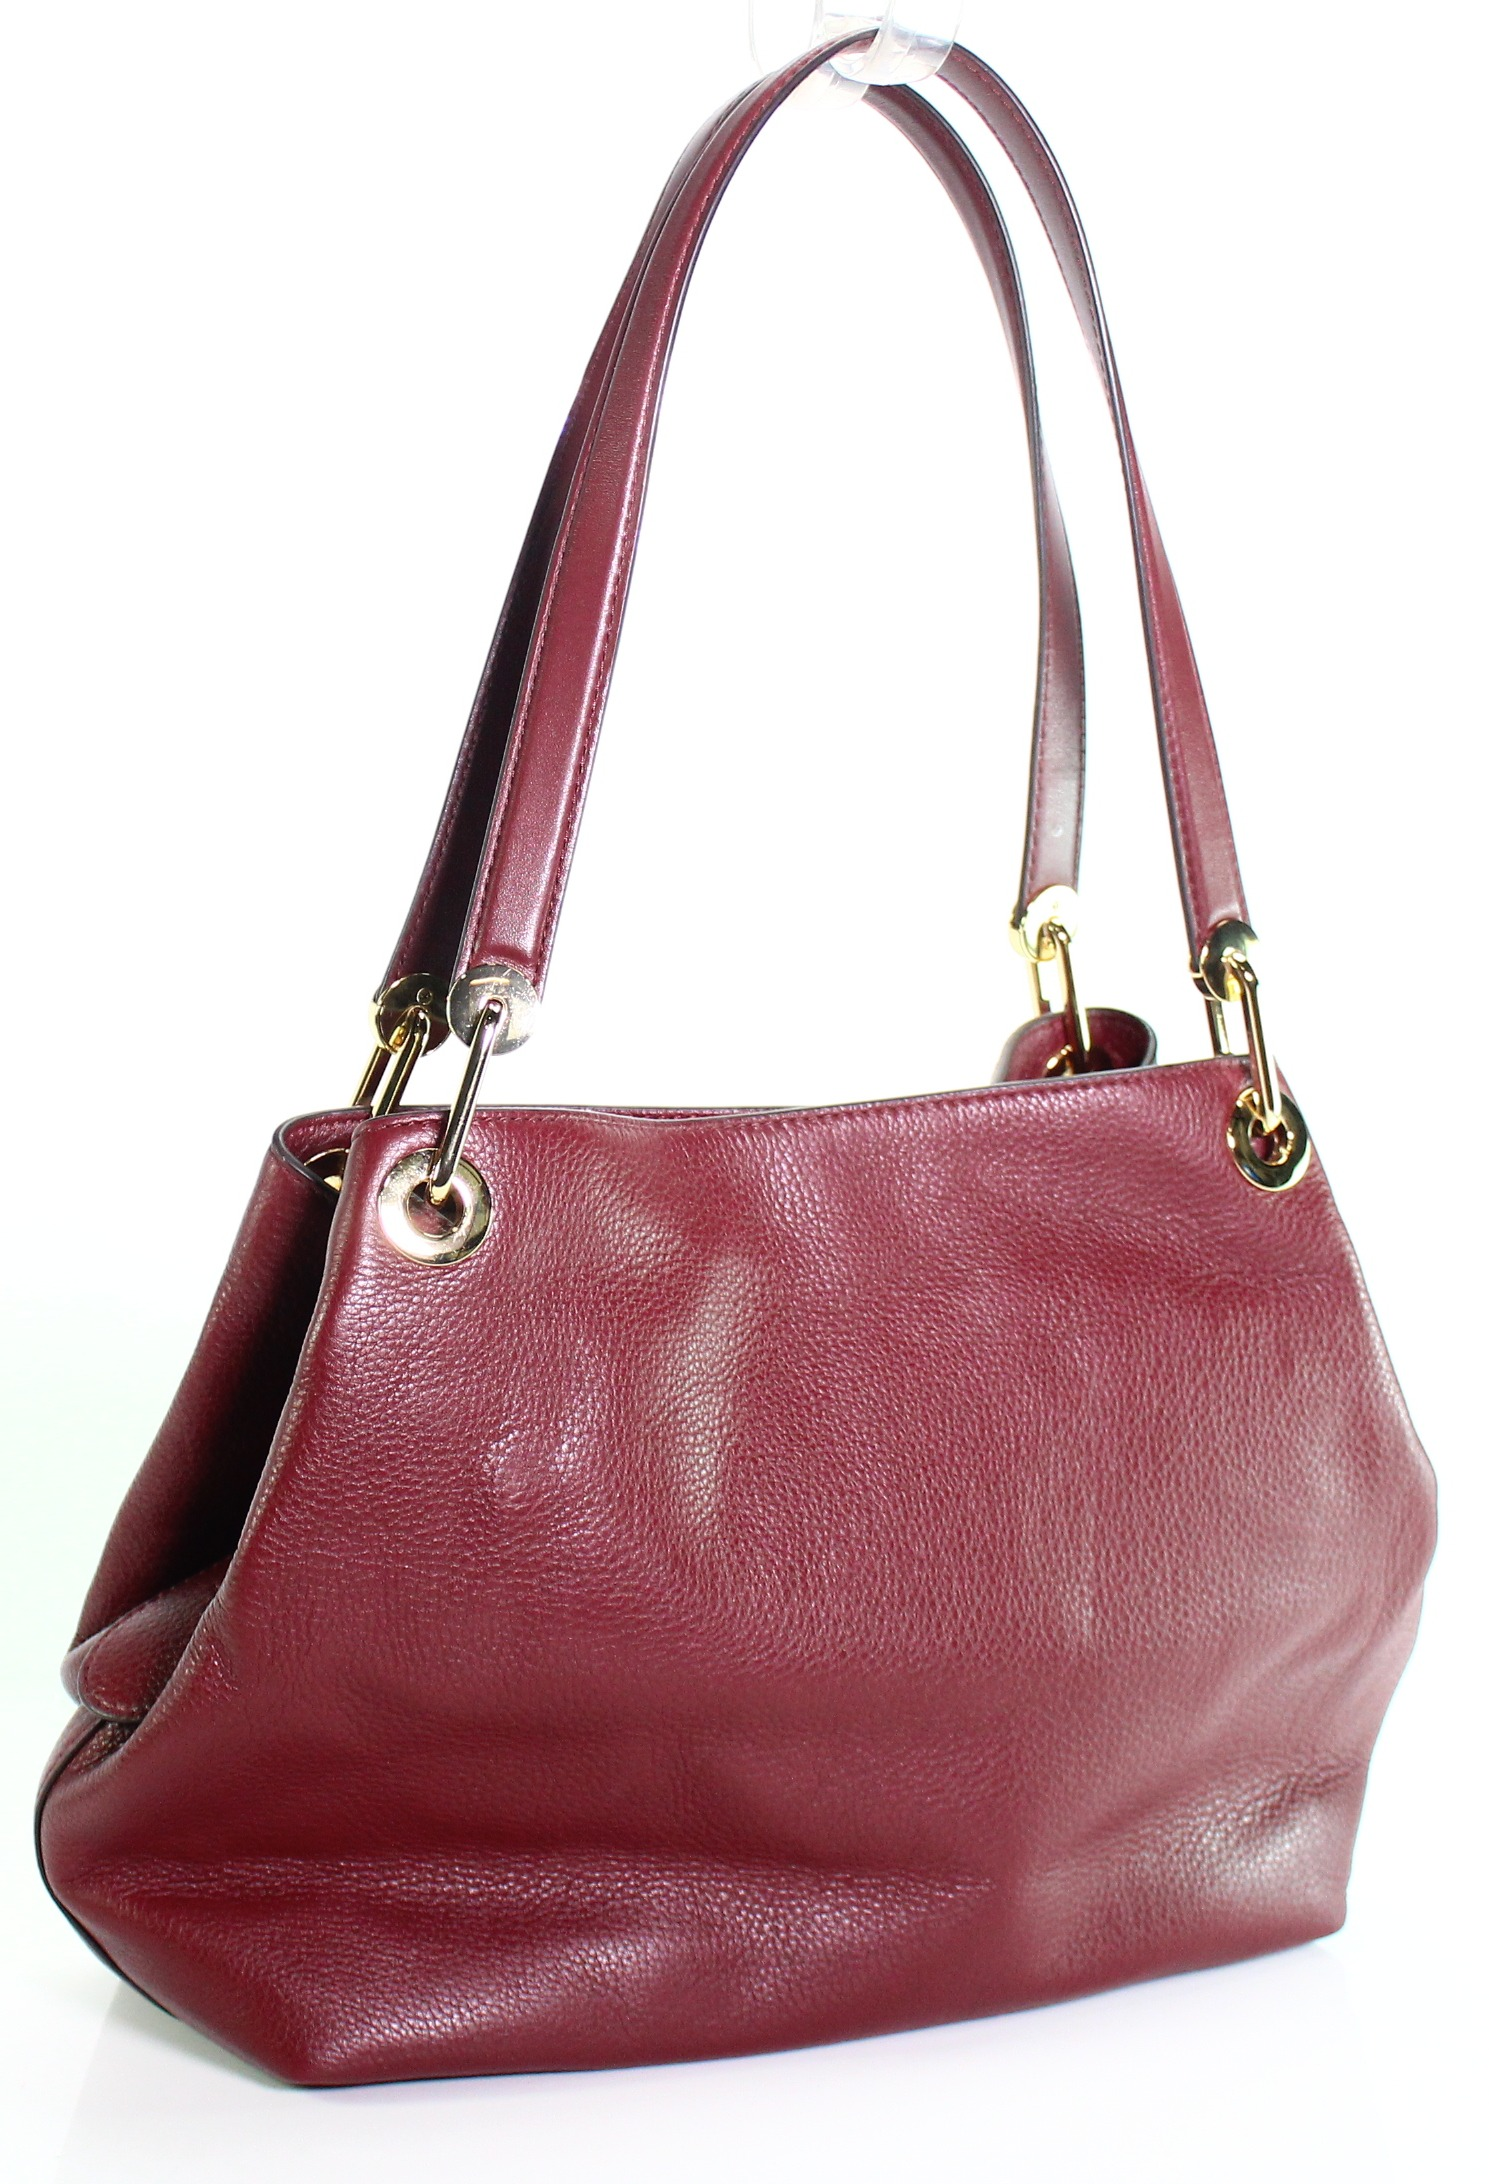 Michael Kors New Oxblood Red Raven Pebble Leather Large